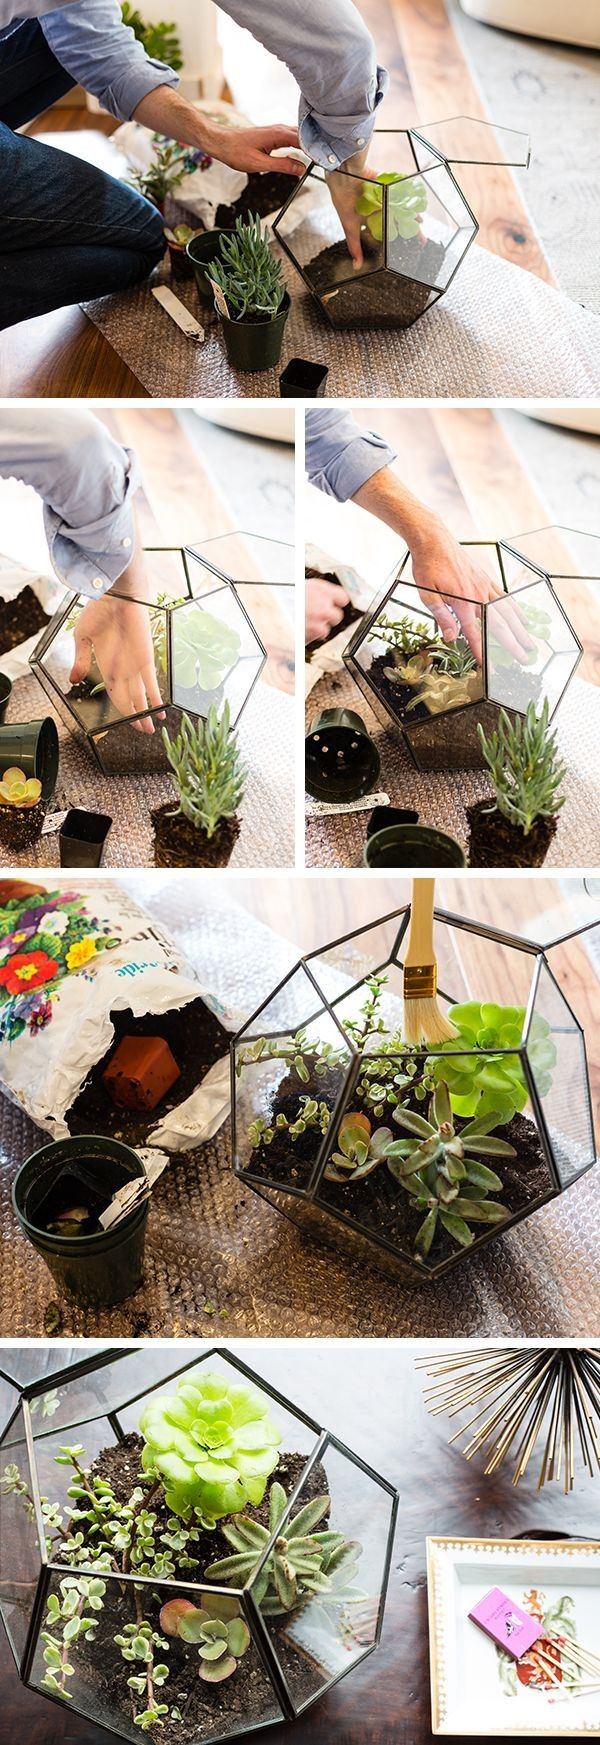 Creative ways to grow plants